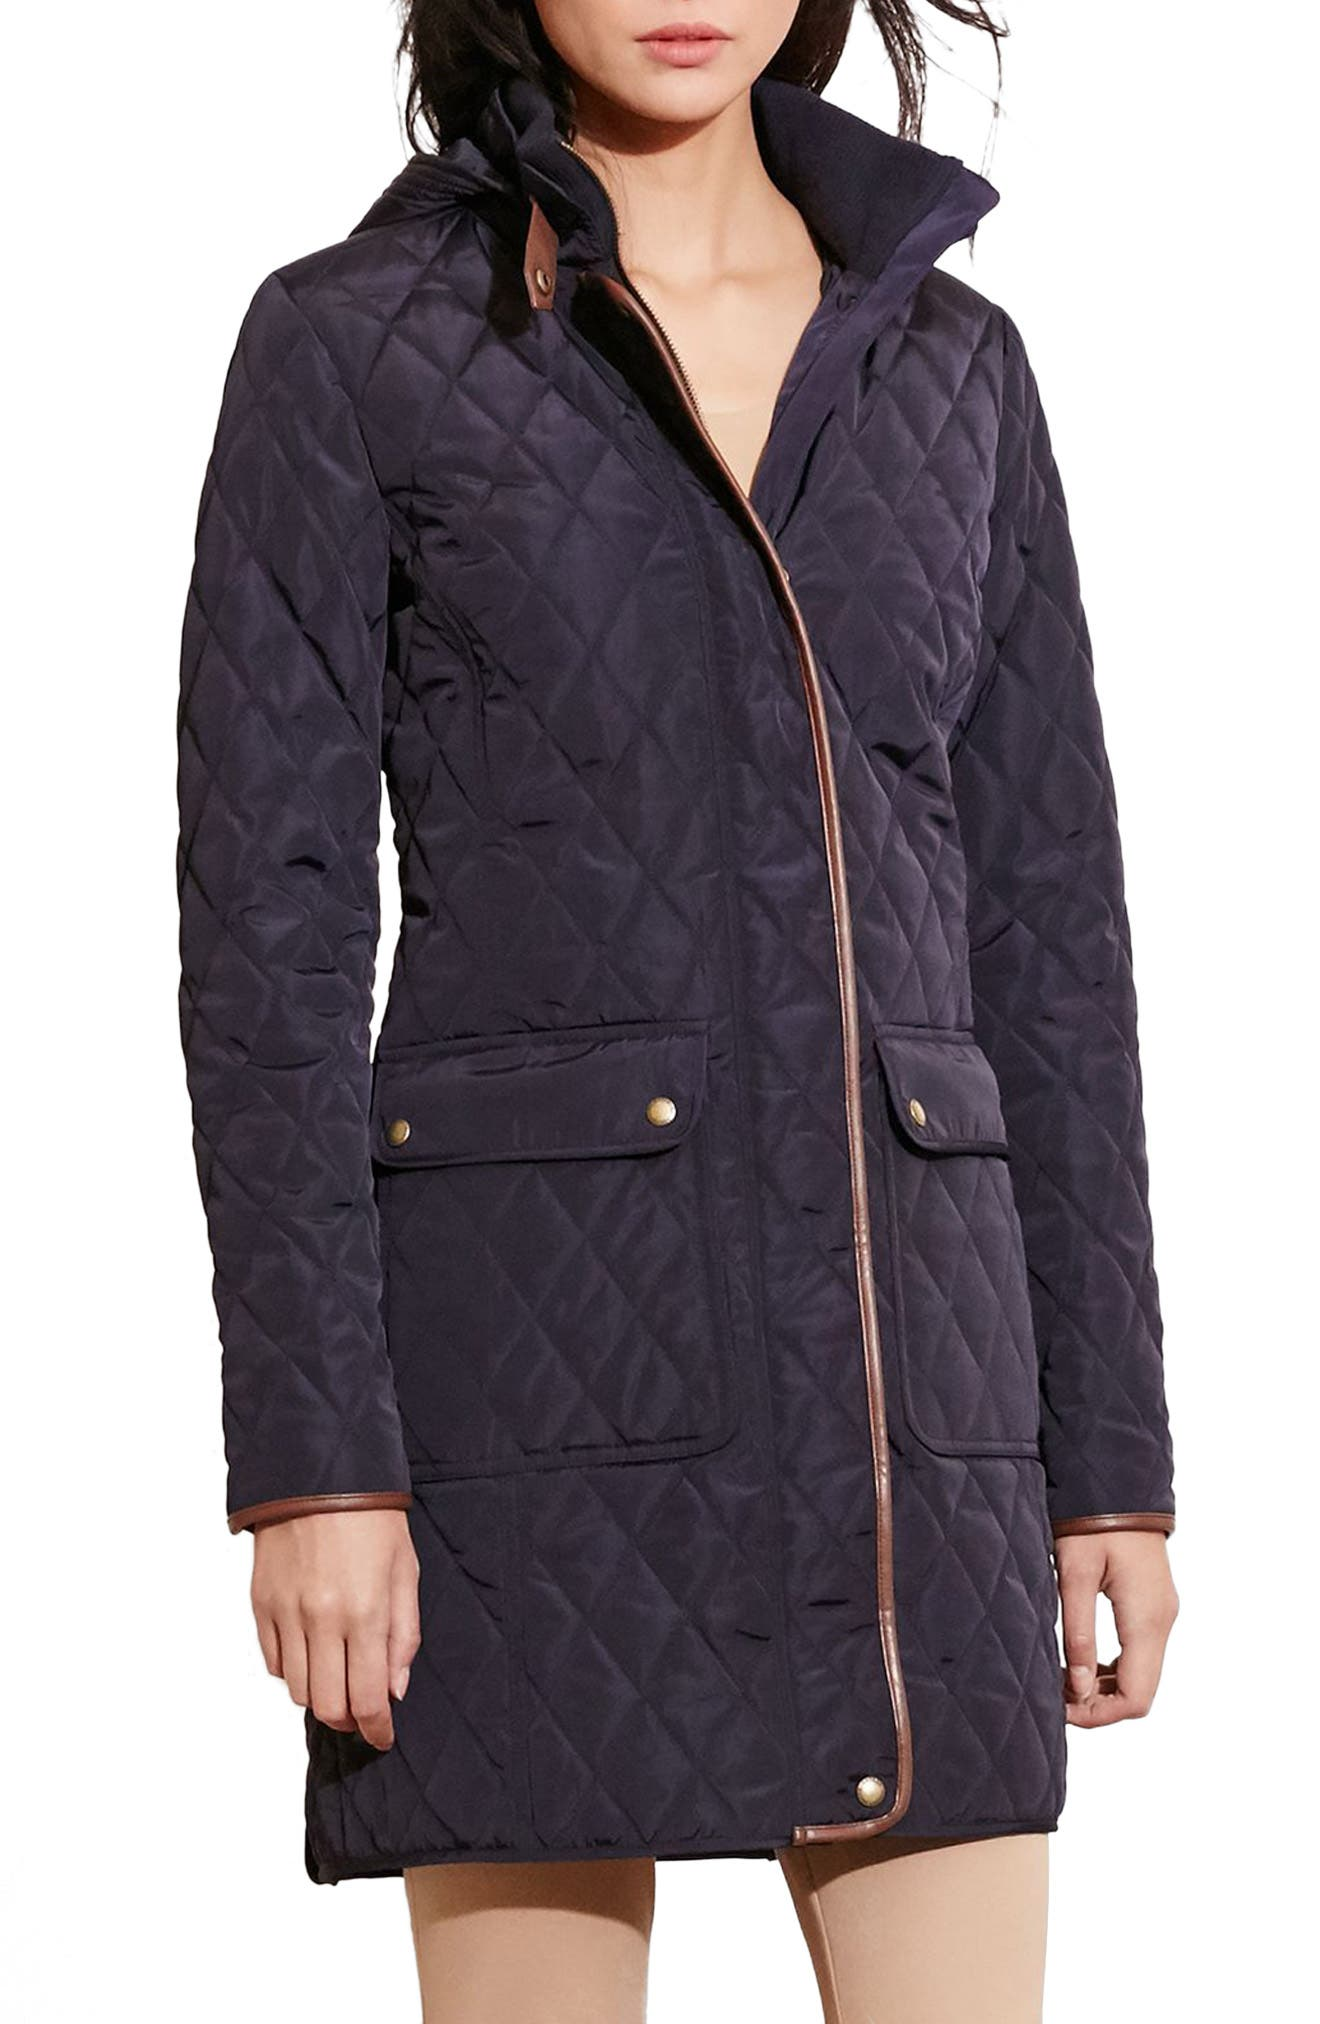 Diamond Quilted Coat with Faux Leather Trim,                             Main thumbnail 1, color,                             402